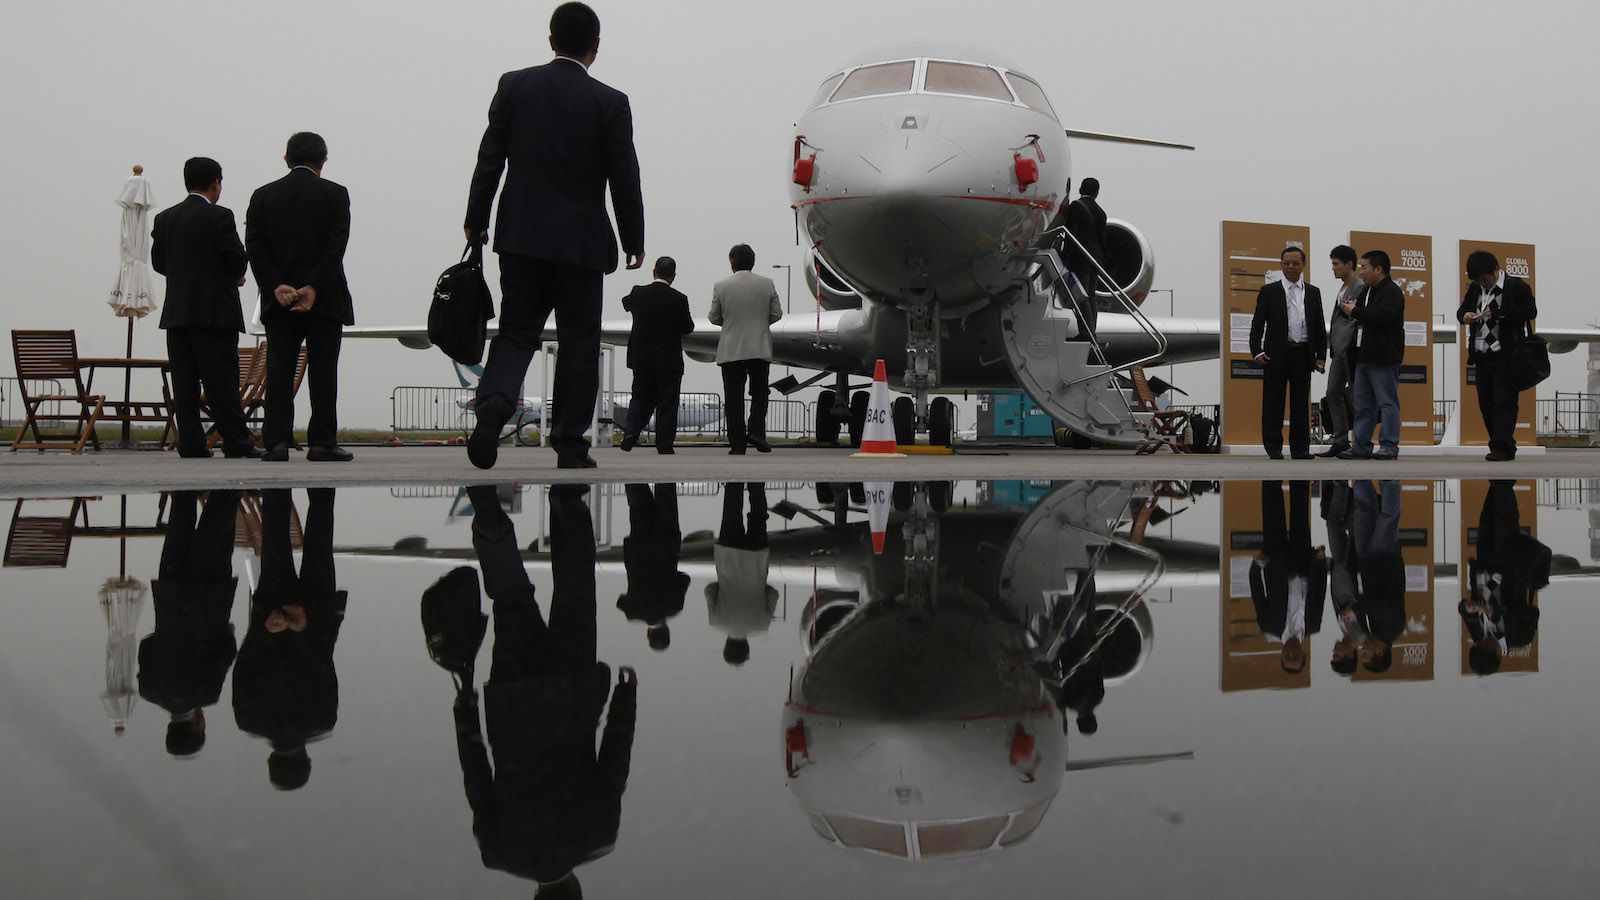 Visitors tour the Bombardier Global Express XRS corporate jet during the Asian Aerospace Show in Hong Kong Tuesday, March 8, 2011. Canada's Bombardier, Brazil's Embraer, and other makers of smaller jets will also be on hand, underscoring their desire to cash in on opportunities for sales of corporate and private jets. (AP Photo/Kin Cheung)